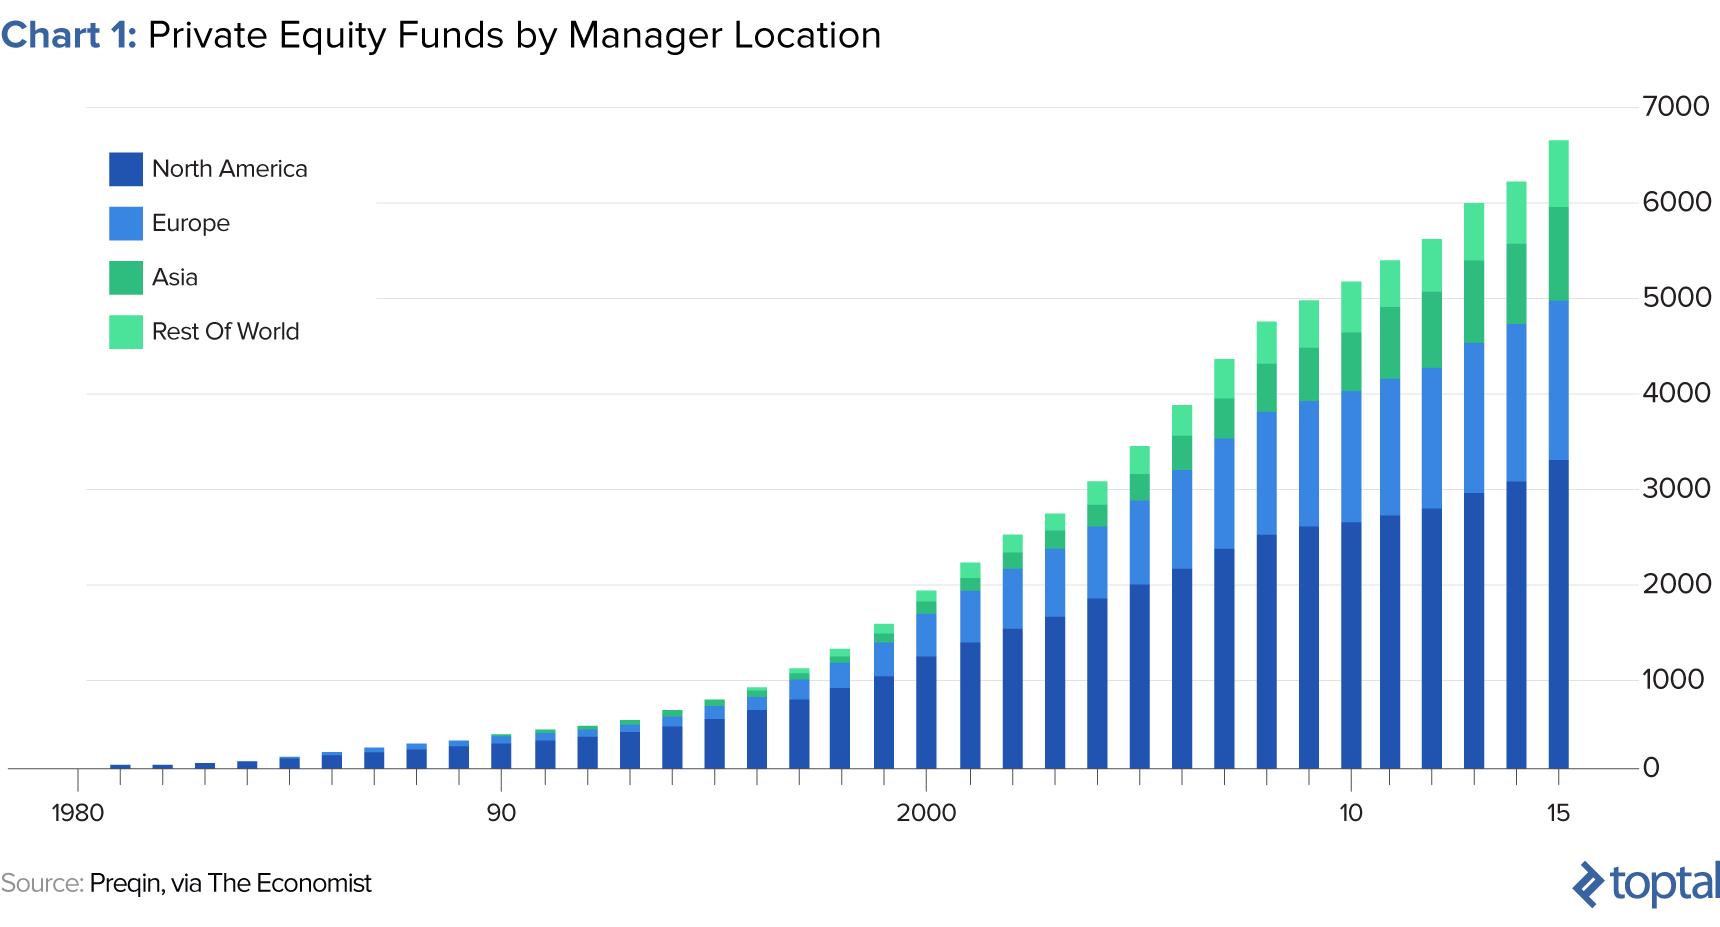 private equity fundraising and number of firms has increased